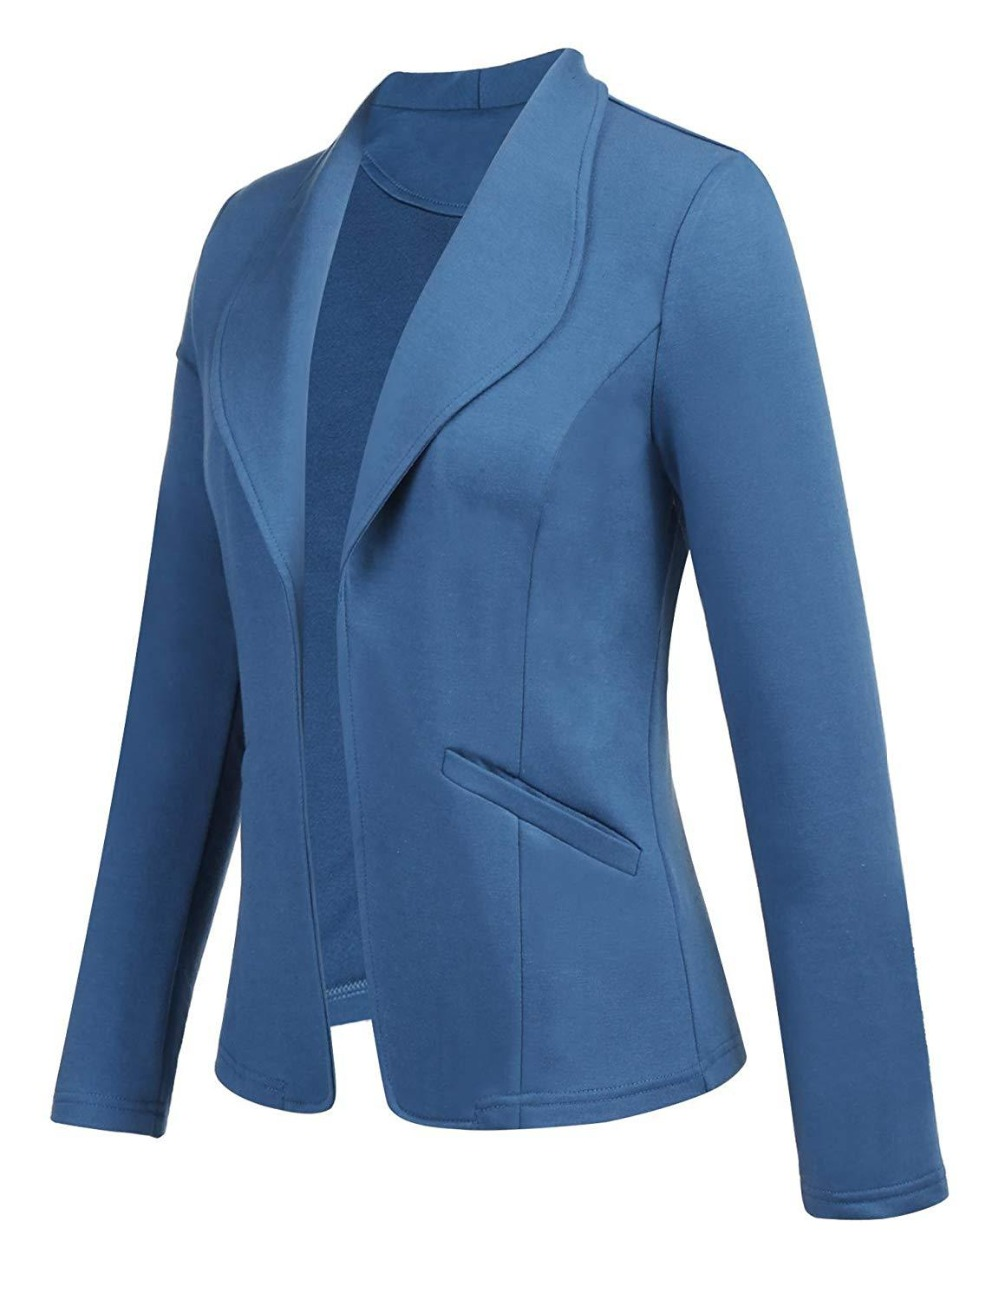 Women Suit Coat Long Sleeve Notched Neck Slim Blazers Office Lady Solid Color Cardigan Casual Work Outwear Suits Female